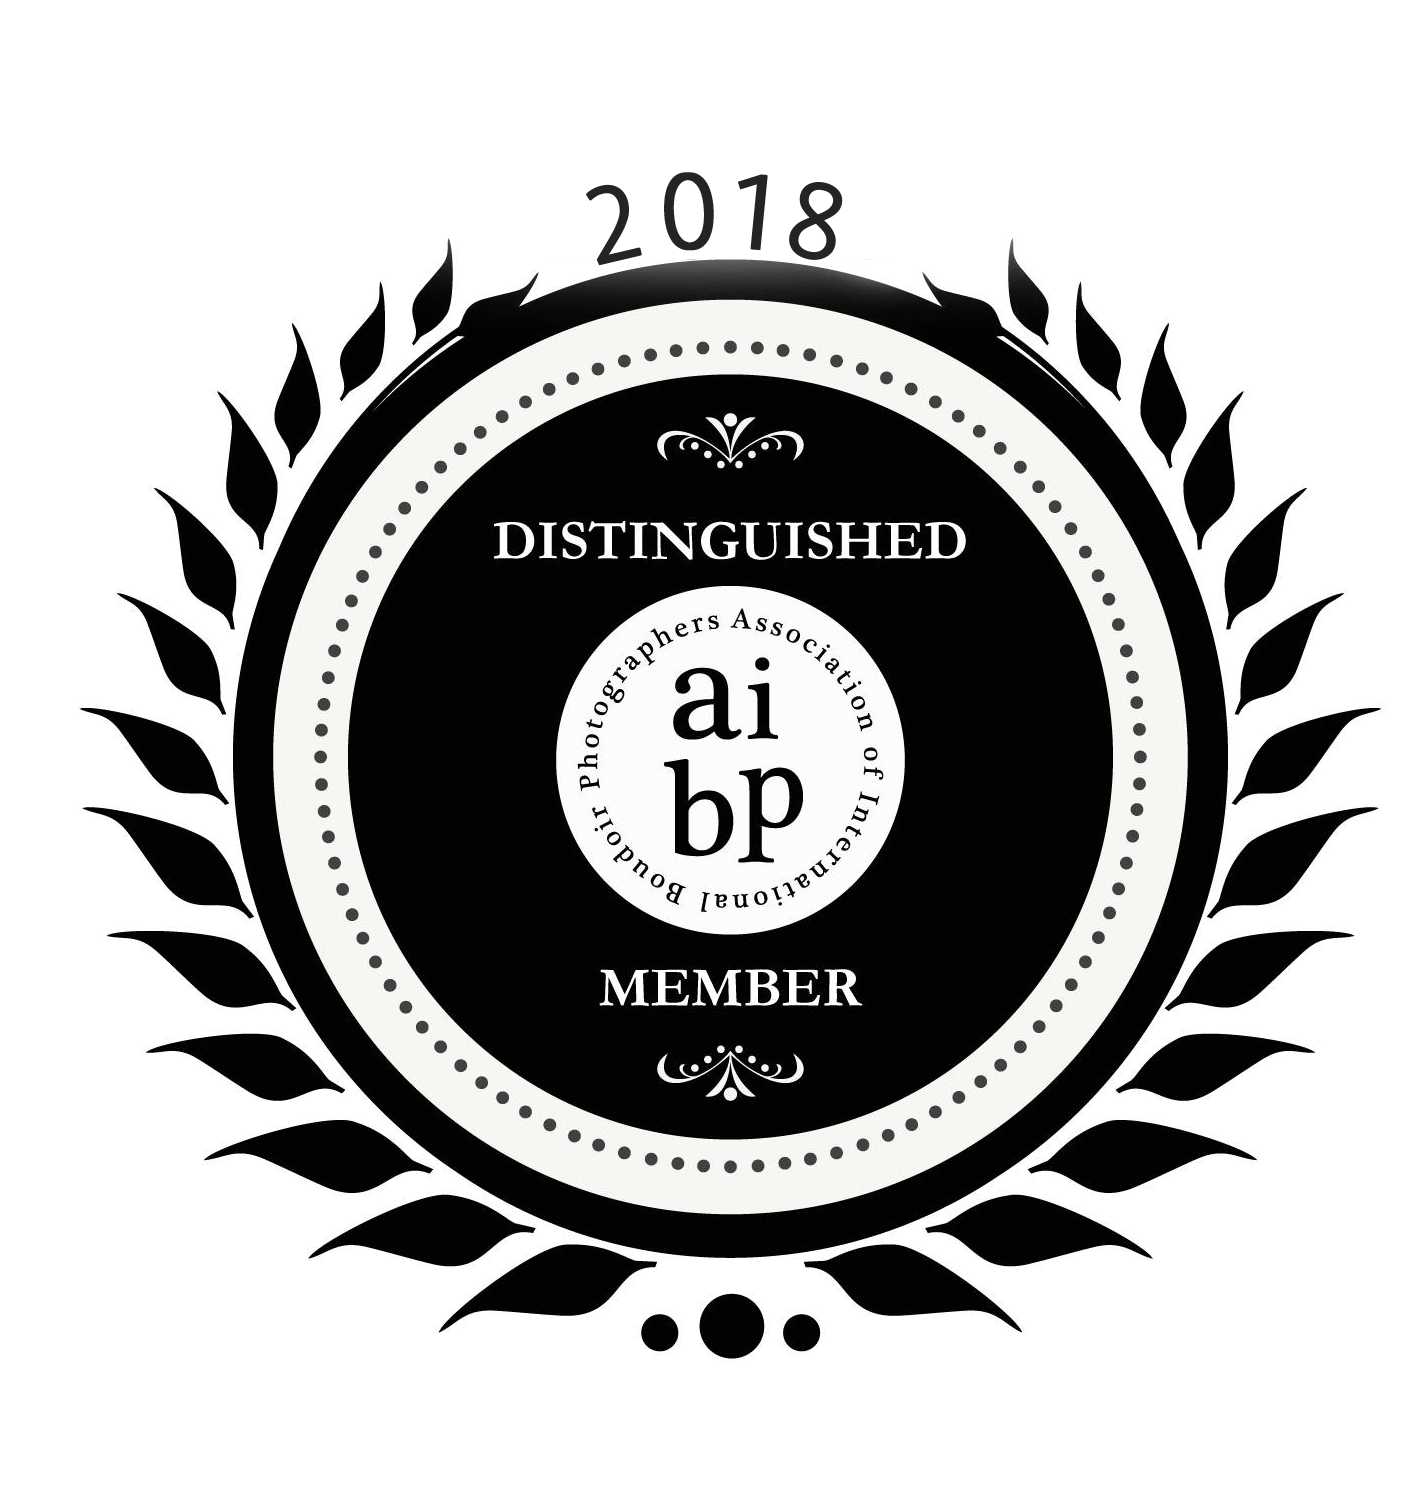 AIBP 2018 Distinguished Member Black